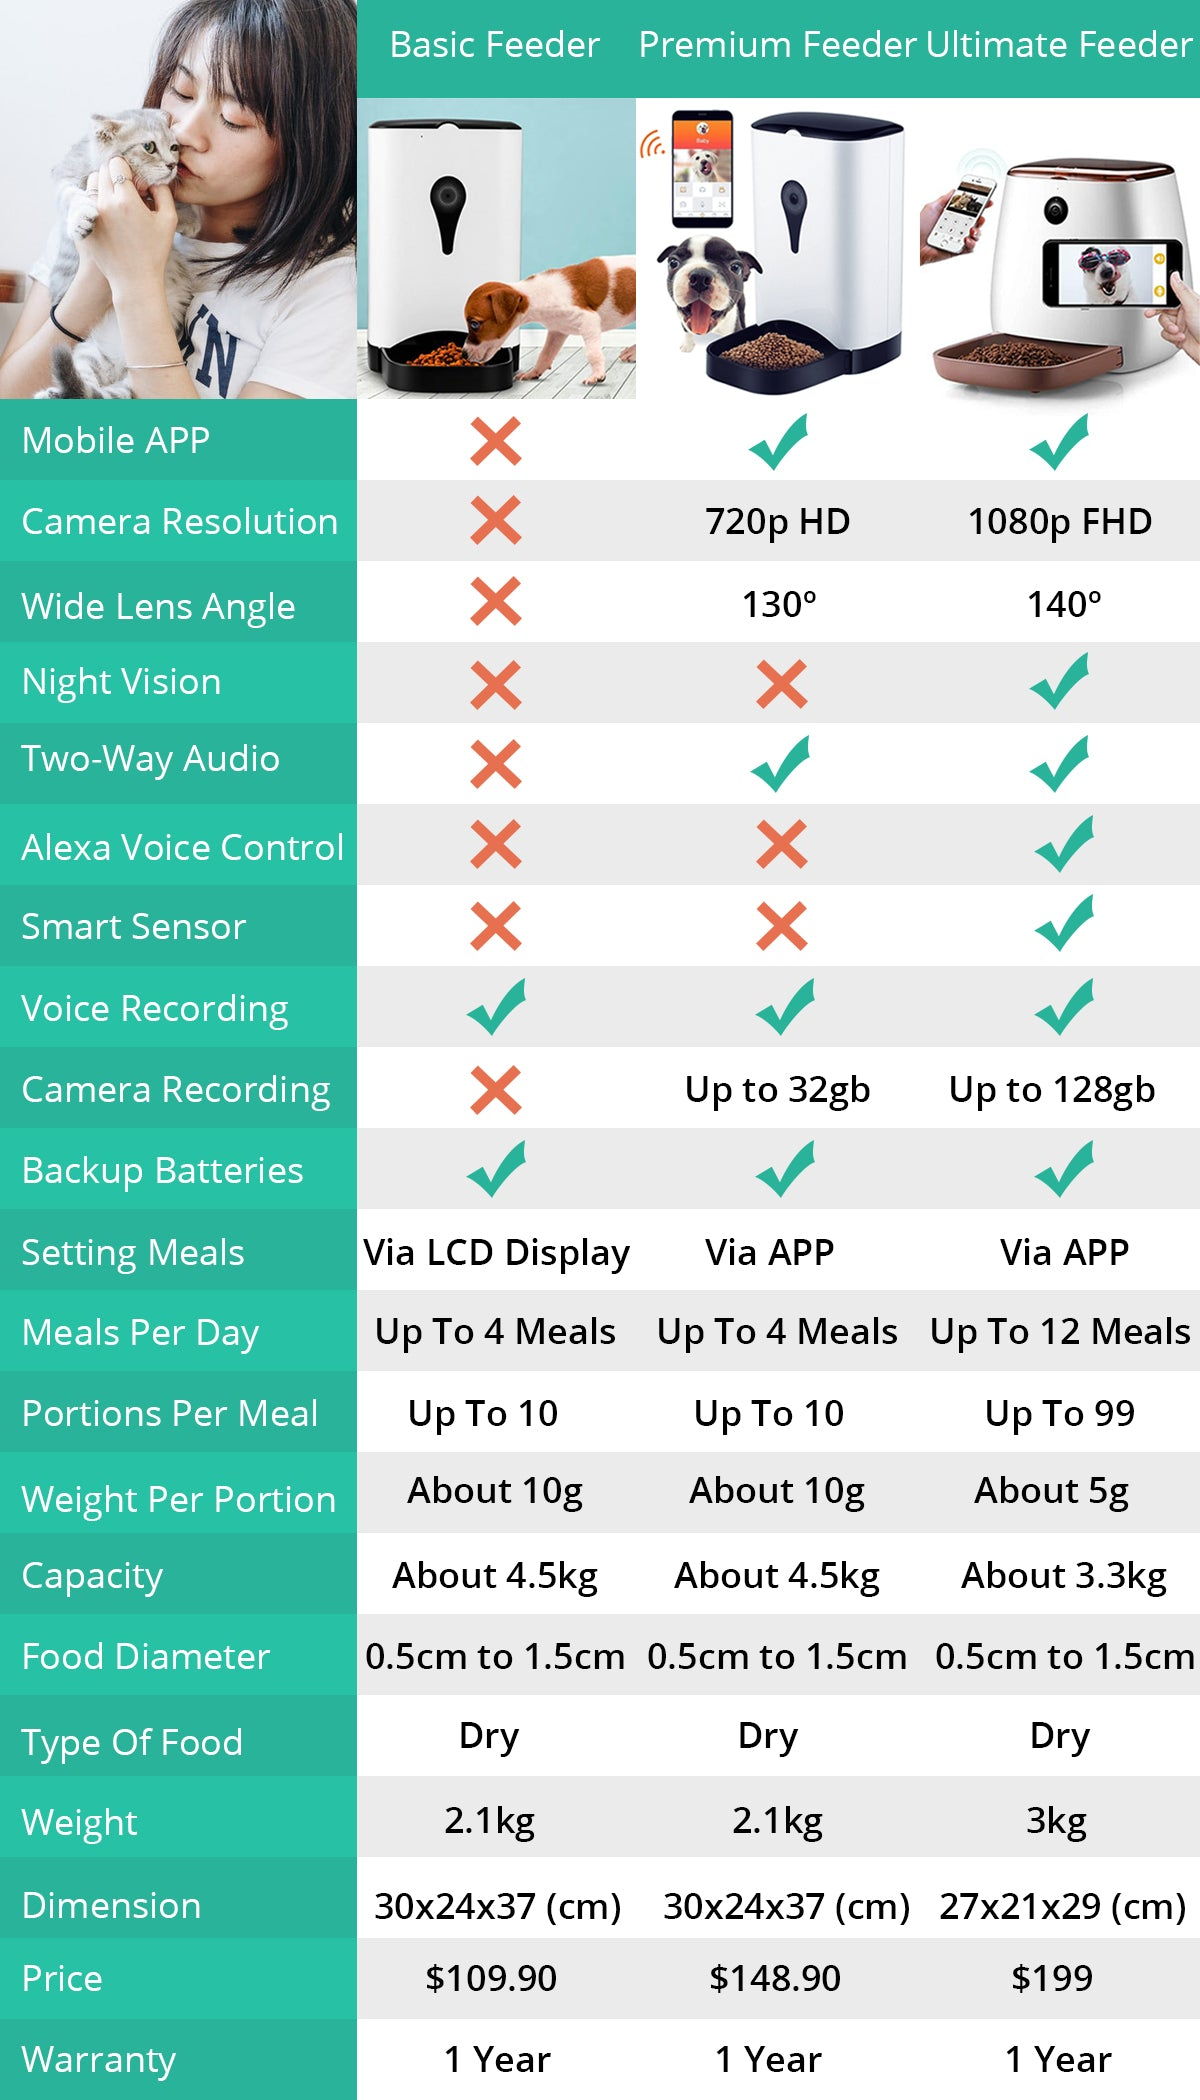 Comparison table between ultimate pet feeder, premium pet feeder and basic pet feeder